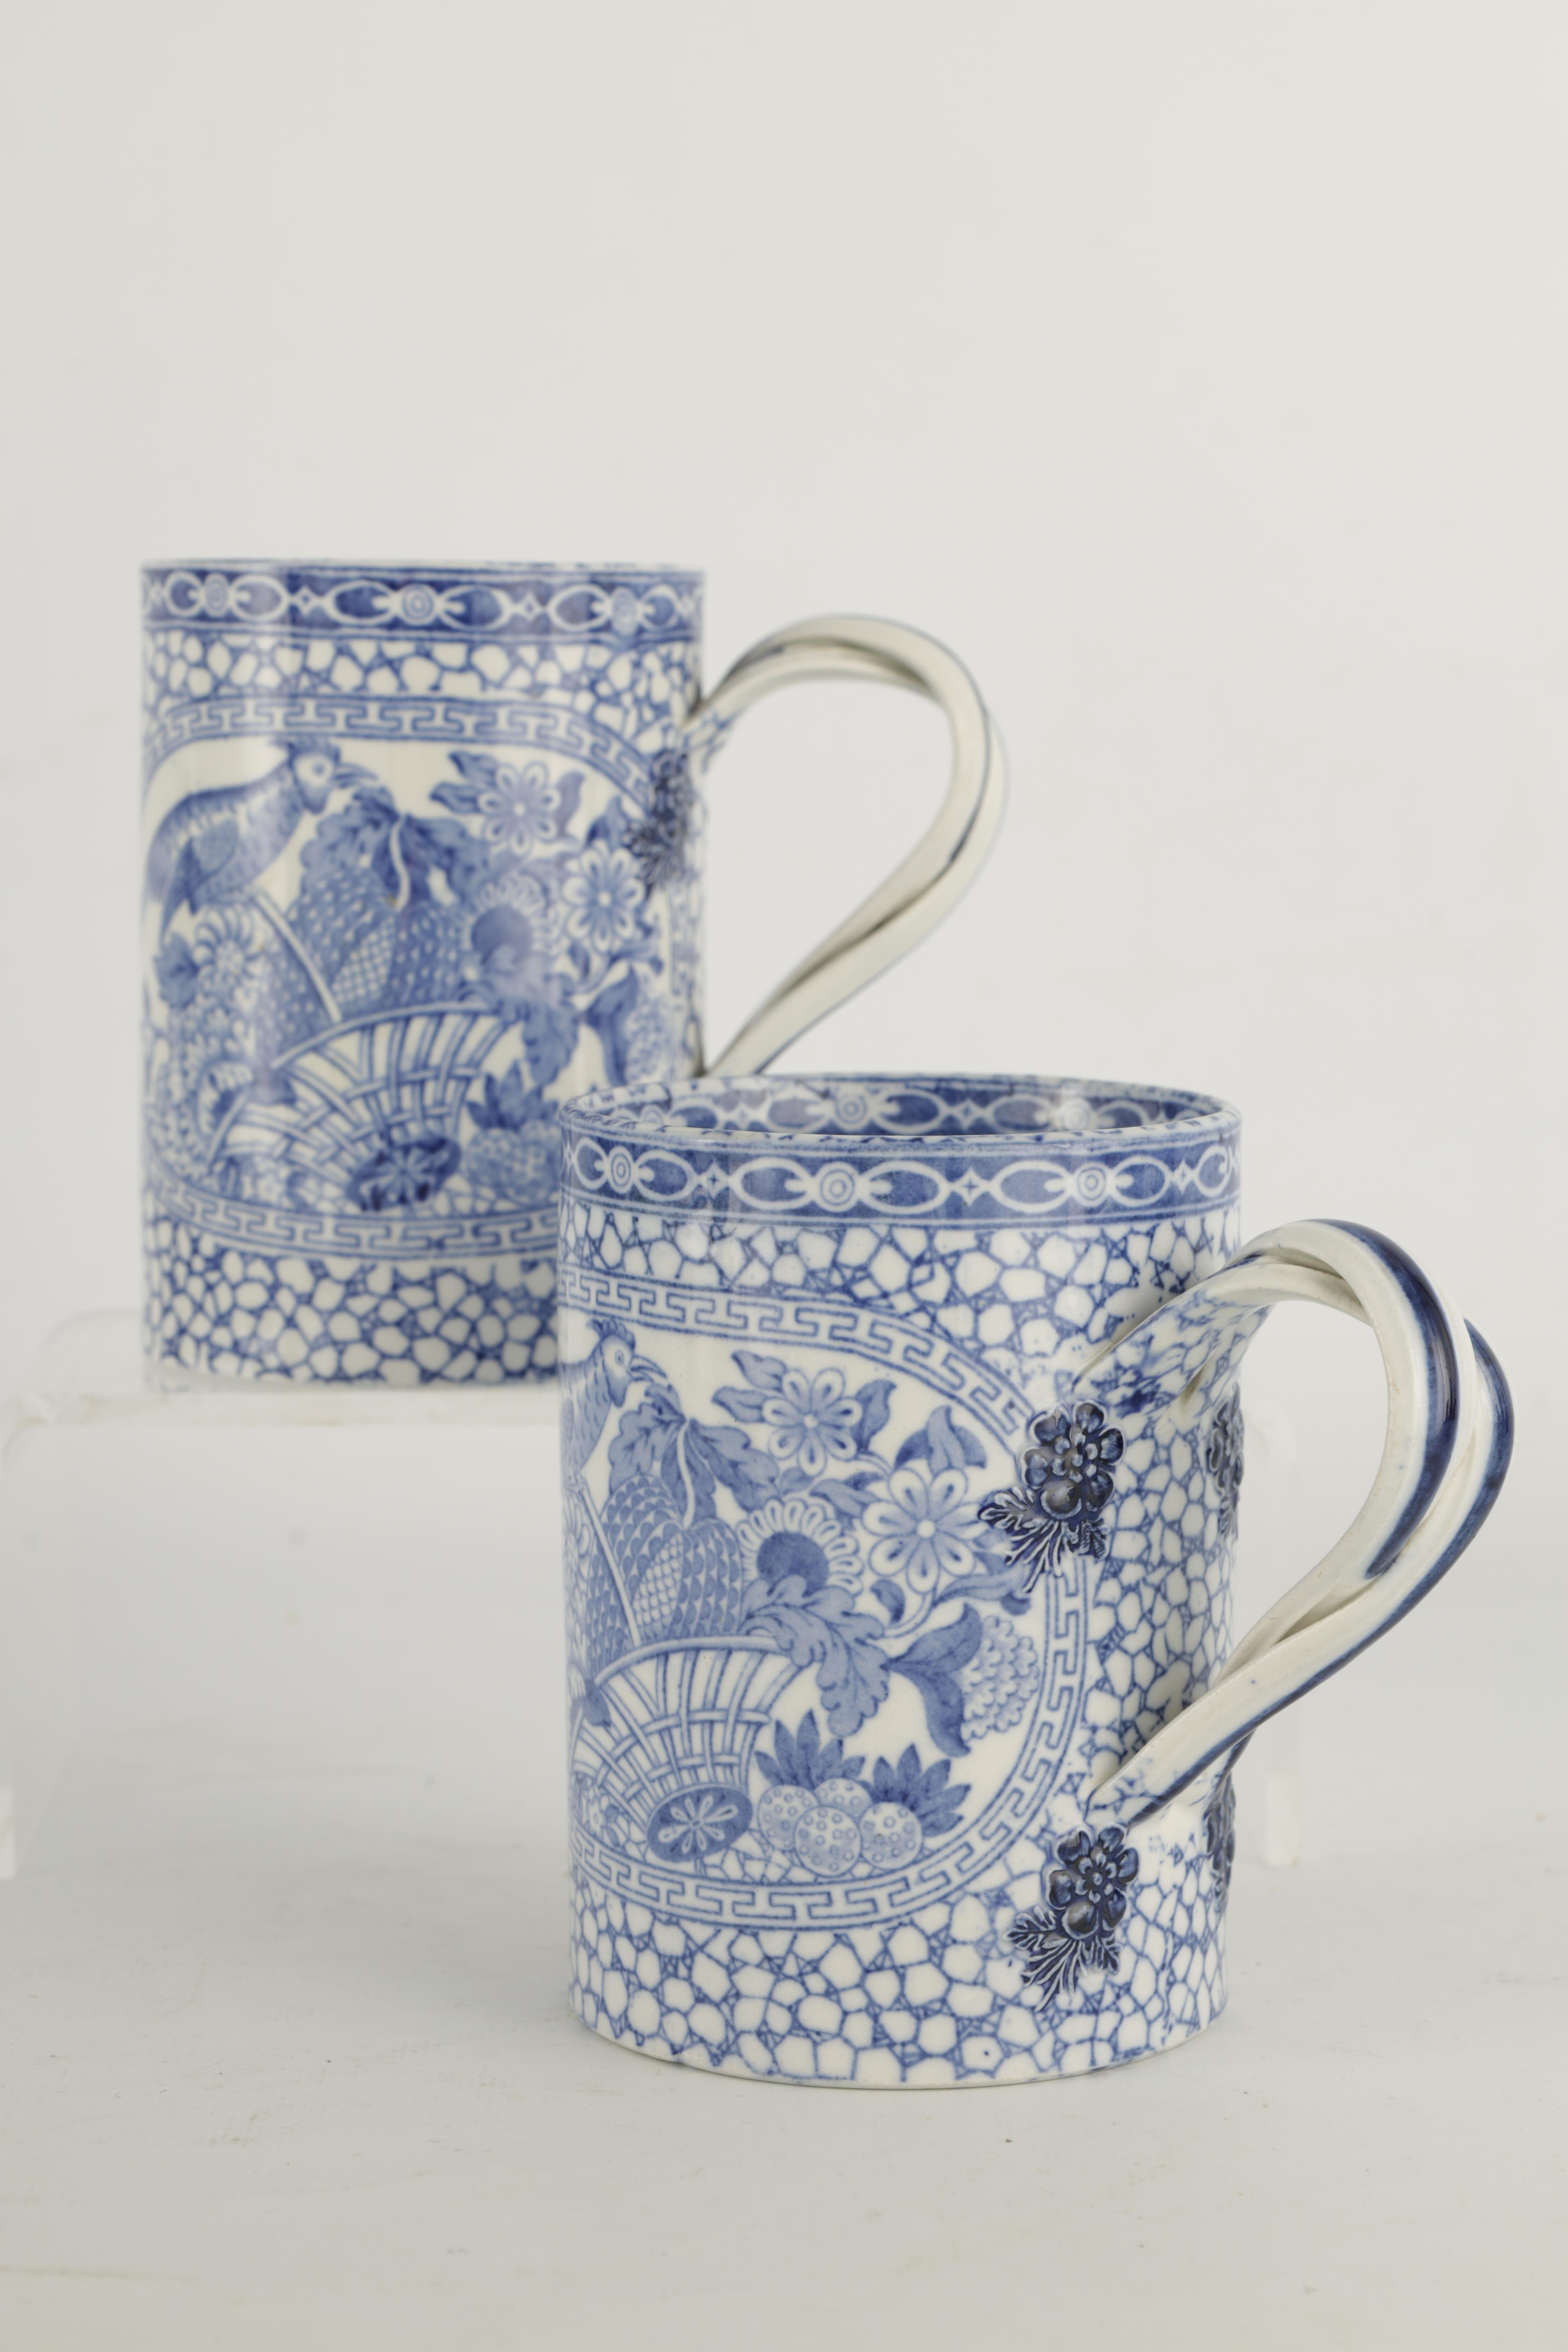 A 19TH CENTURY PEARLWARE JUG WITH RELIEF MOULDED PANELS OF LORD WELLINGTON AND GENERAL HILL on a - Image 13 of 17